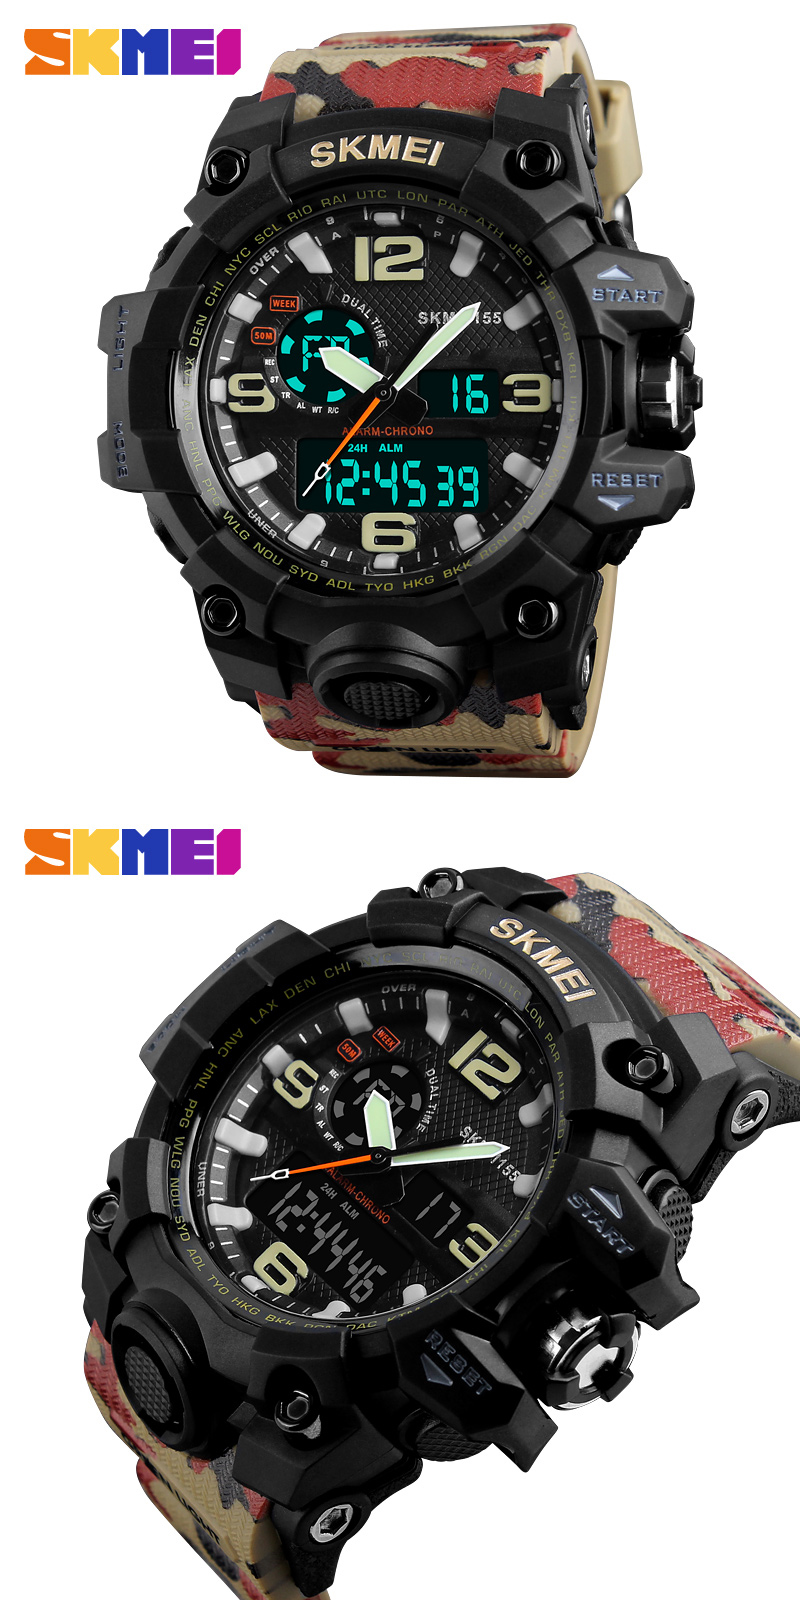 SKMEI 1155 Fashion LED Display Sport Men Digital Watches Quartz Watch Relogio Masculino 50M Waterproof Dual Display Wristwatches